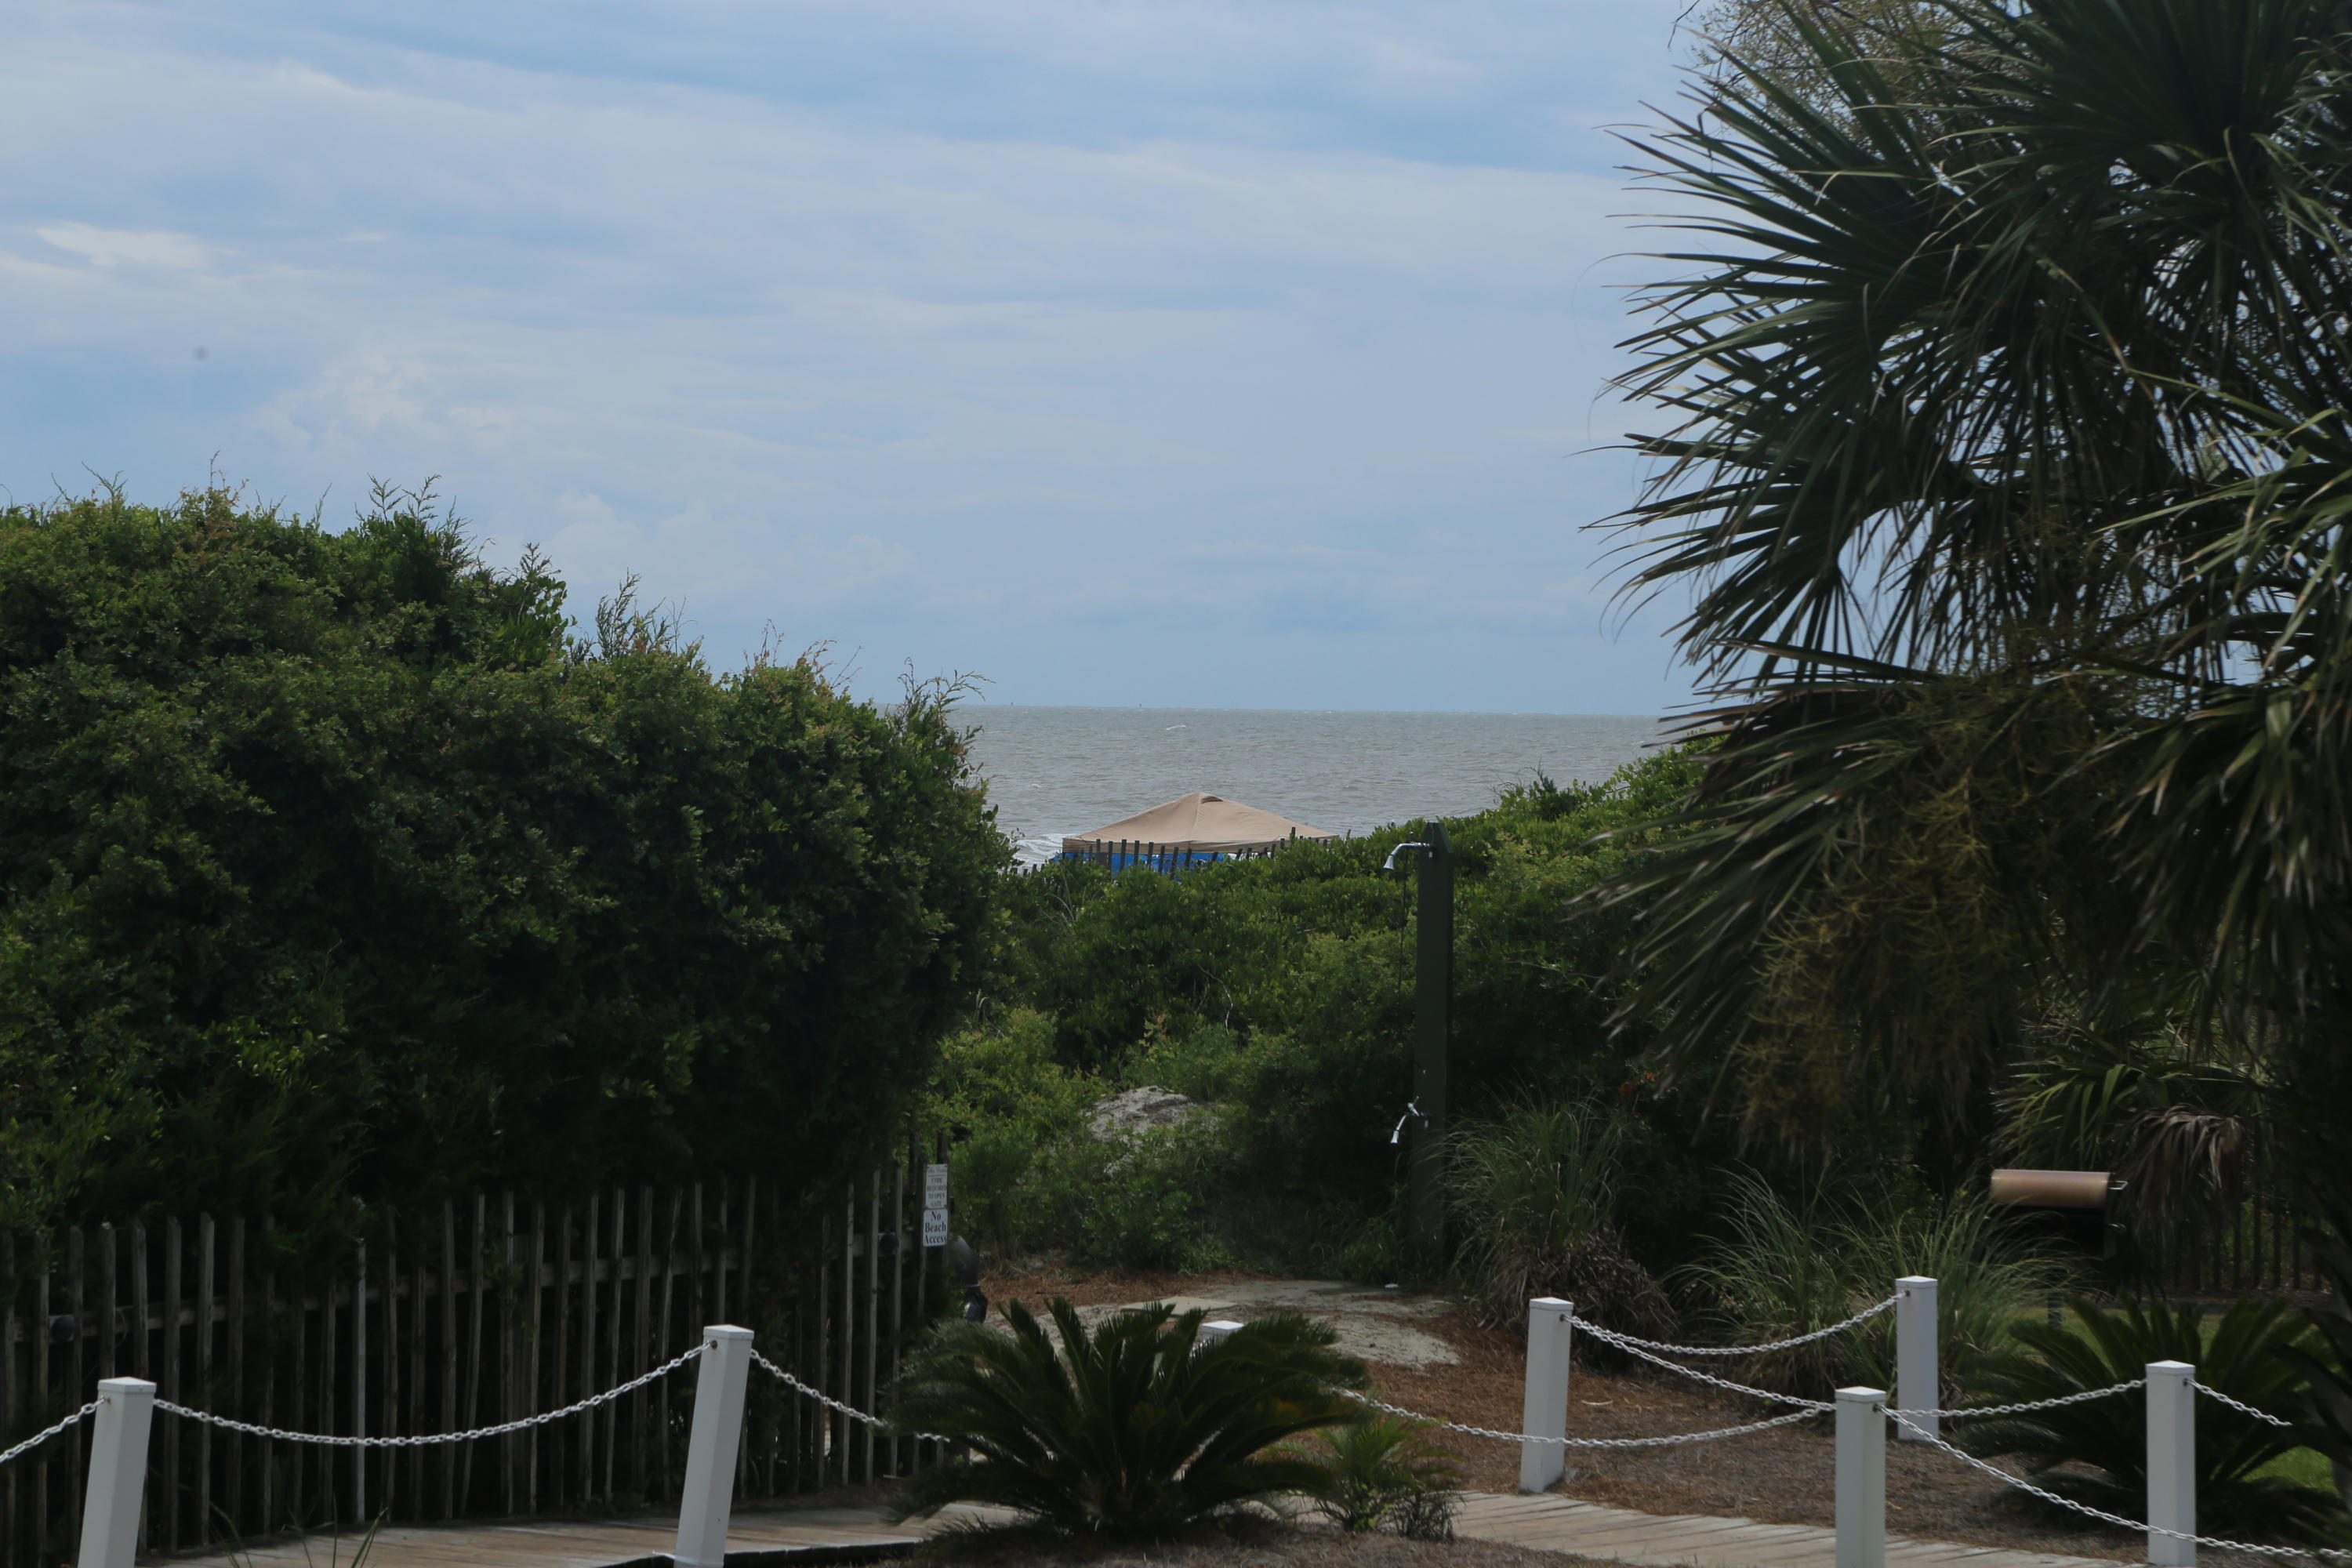 Sea Cabin On The Ocean Homes For Sale - 1300 Ocean, Isle of Palms, SC - 19